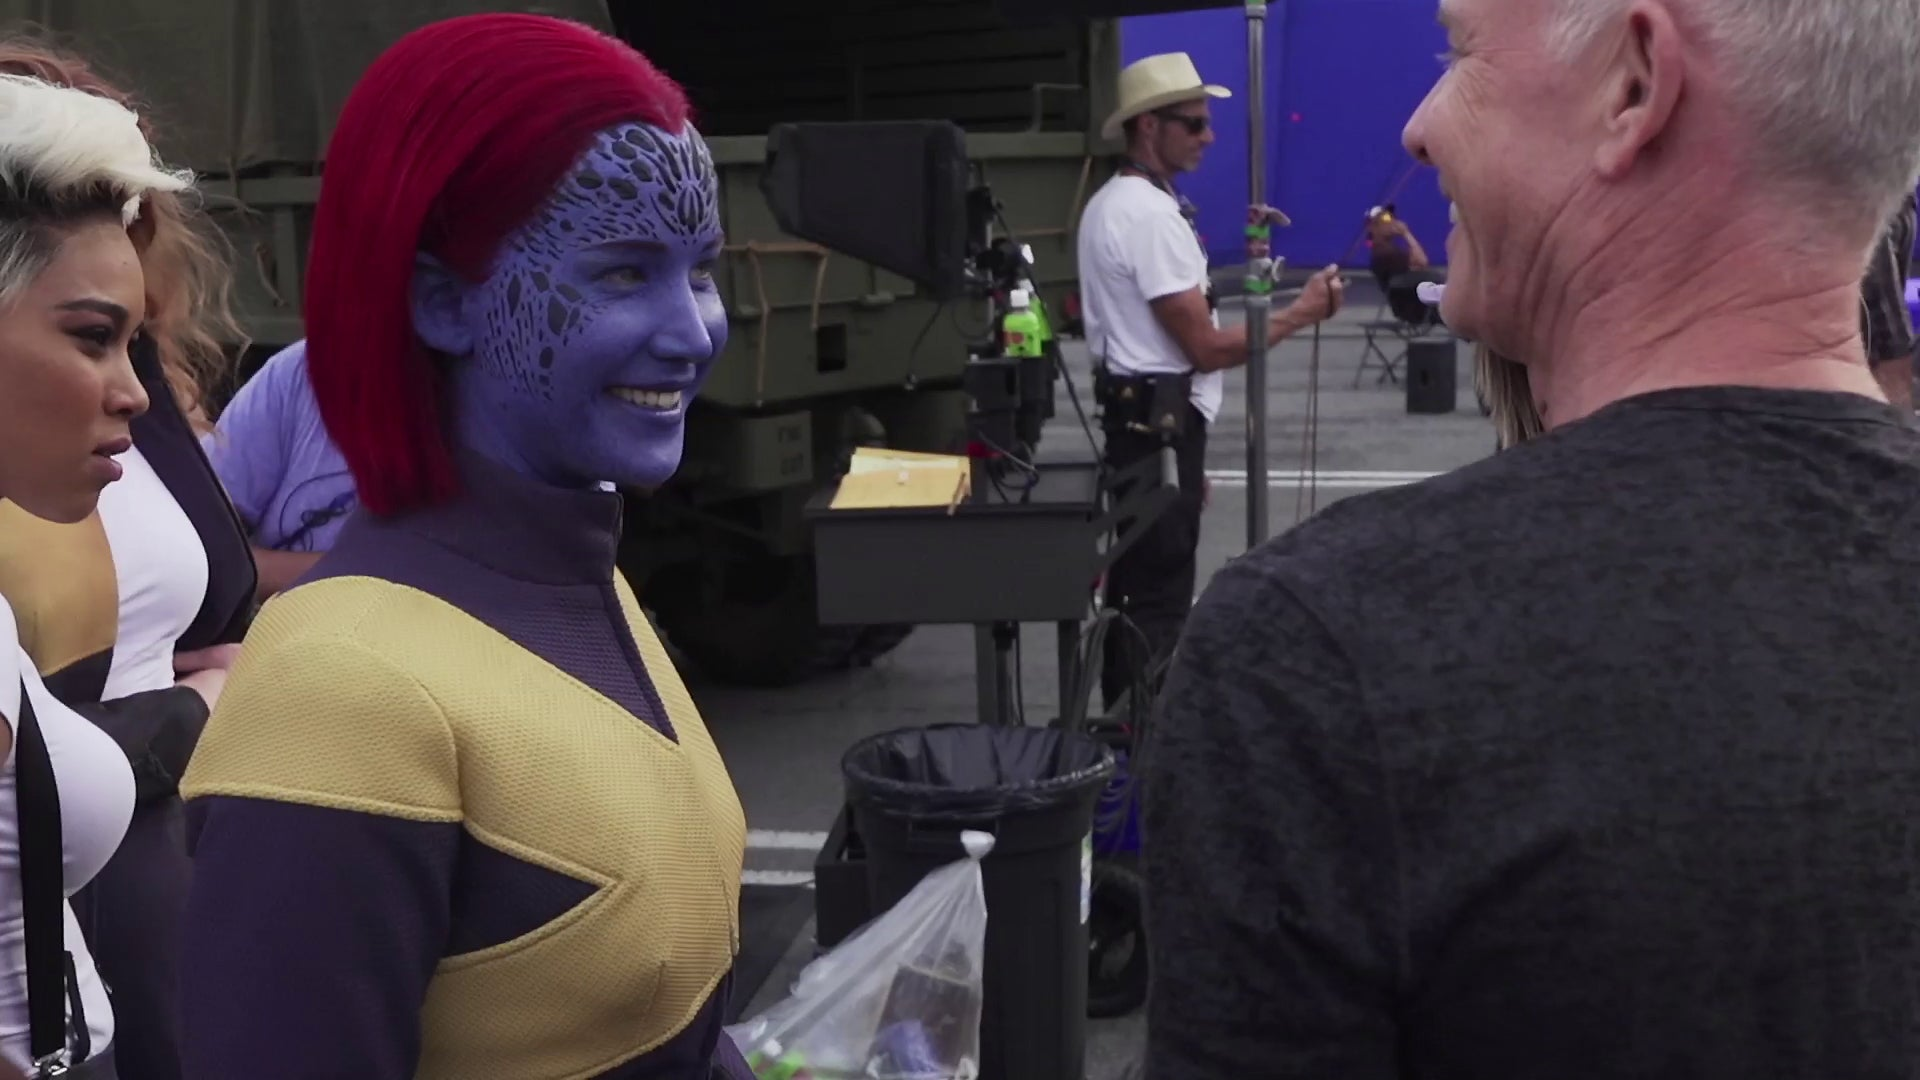 How Jennifer Lawrence Said Goodbye to 'X-Men': Inside Her Last Day on Set (Exclusive)